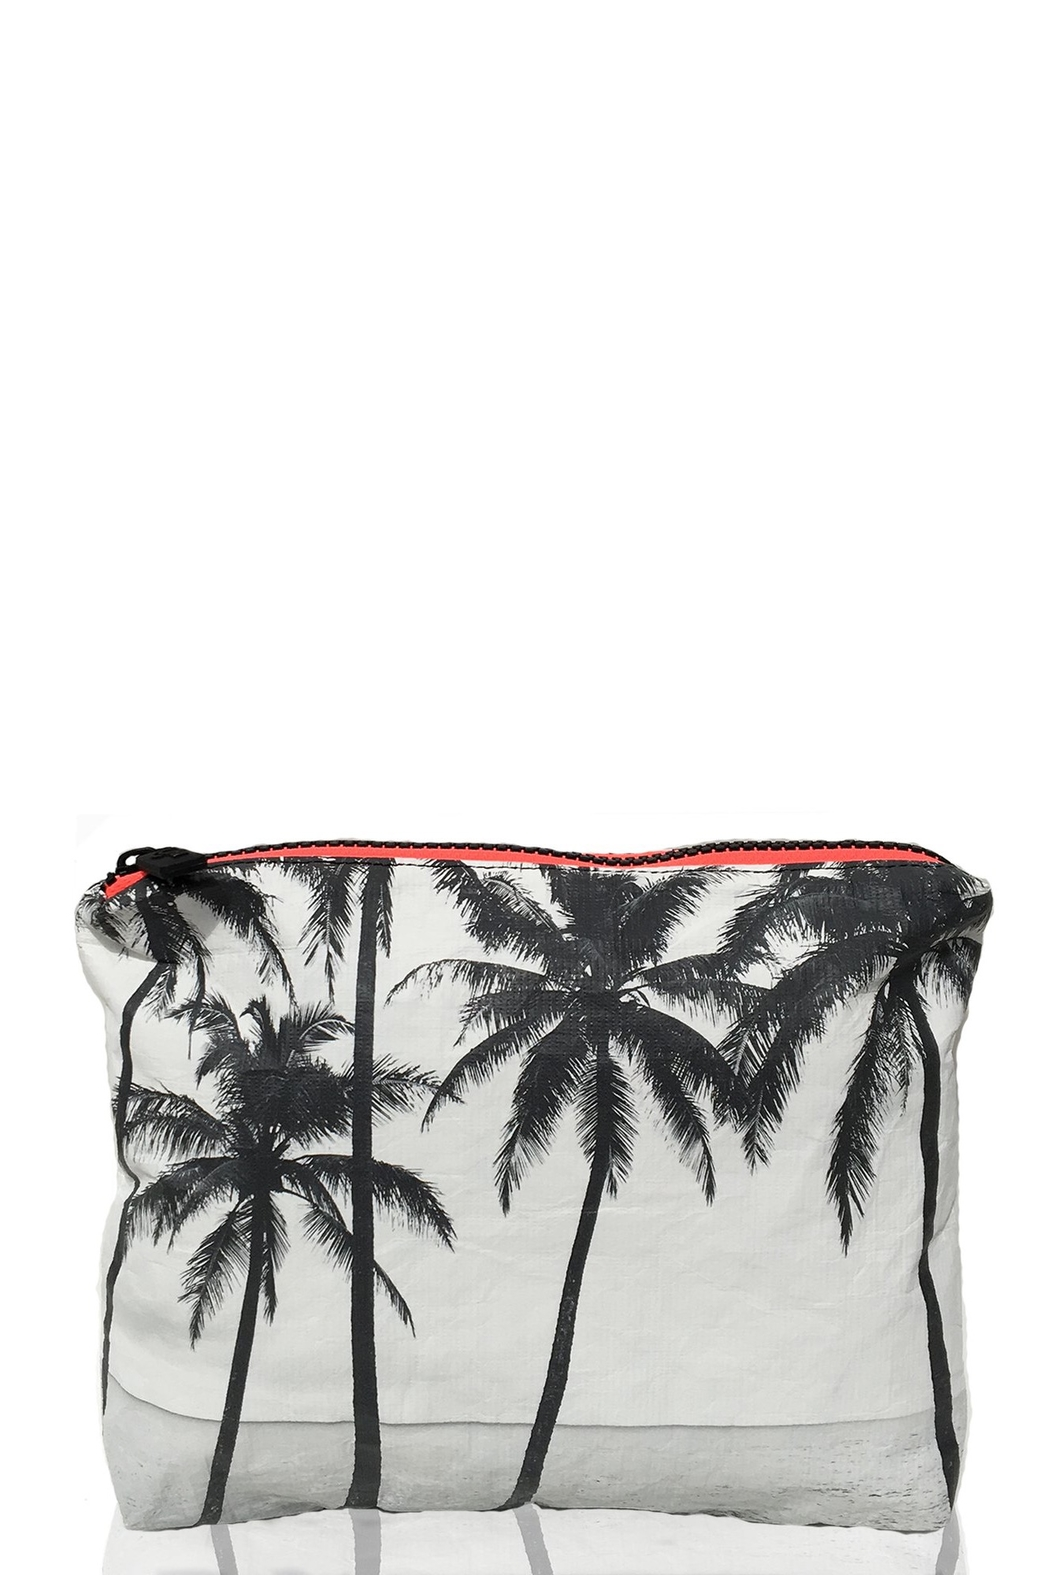 Aloha Collection Kalapana zipper bag - Front Cropped Image